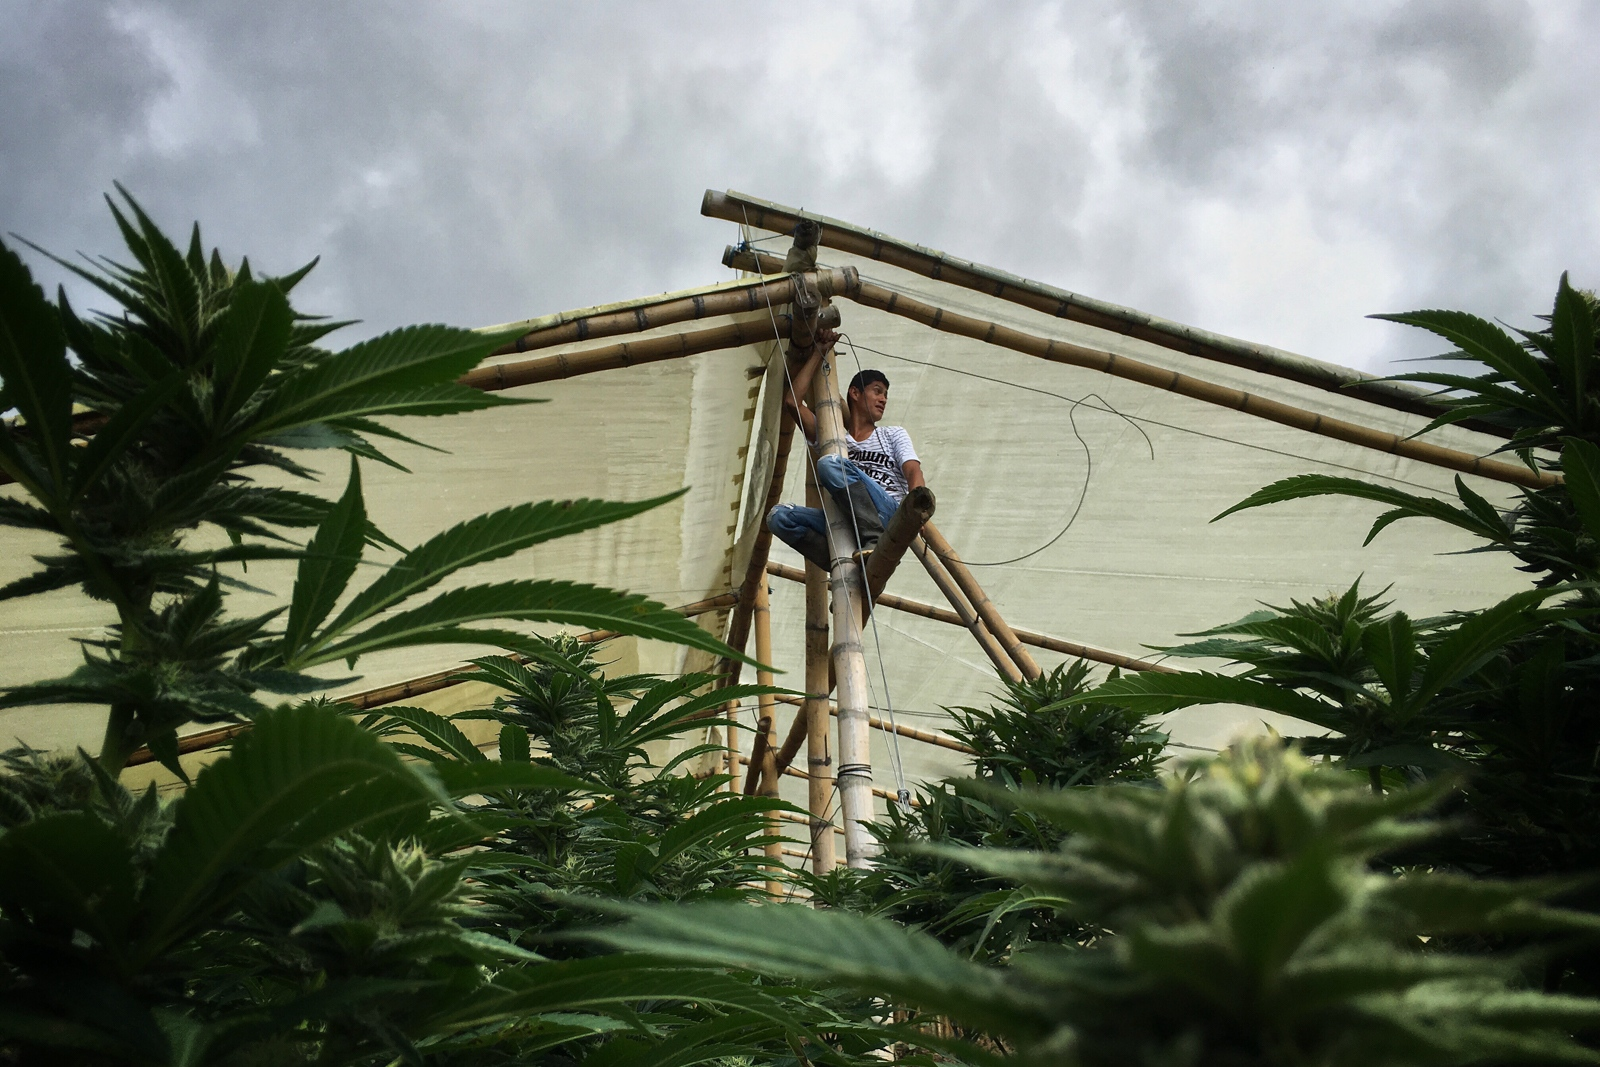 Robeiro climbs to the top of his greenhouse with electric cables that will power light bulbs to keep constant light for the first 3 months of marijuana growth.